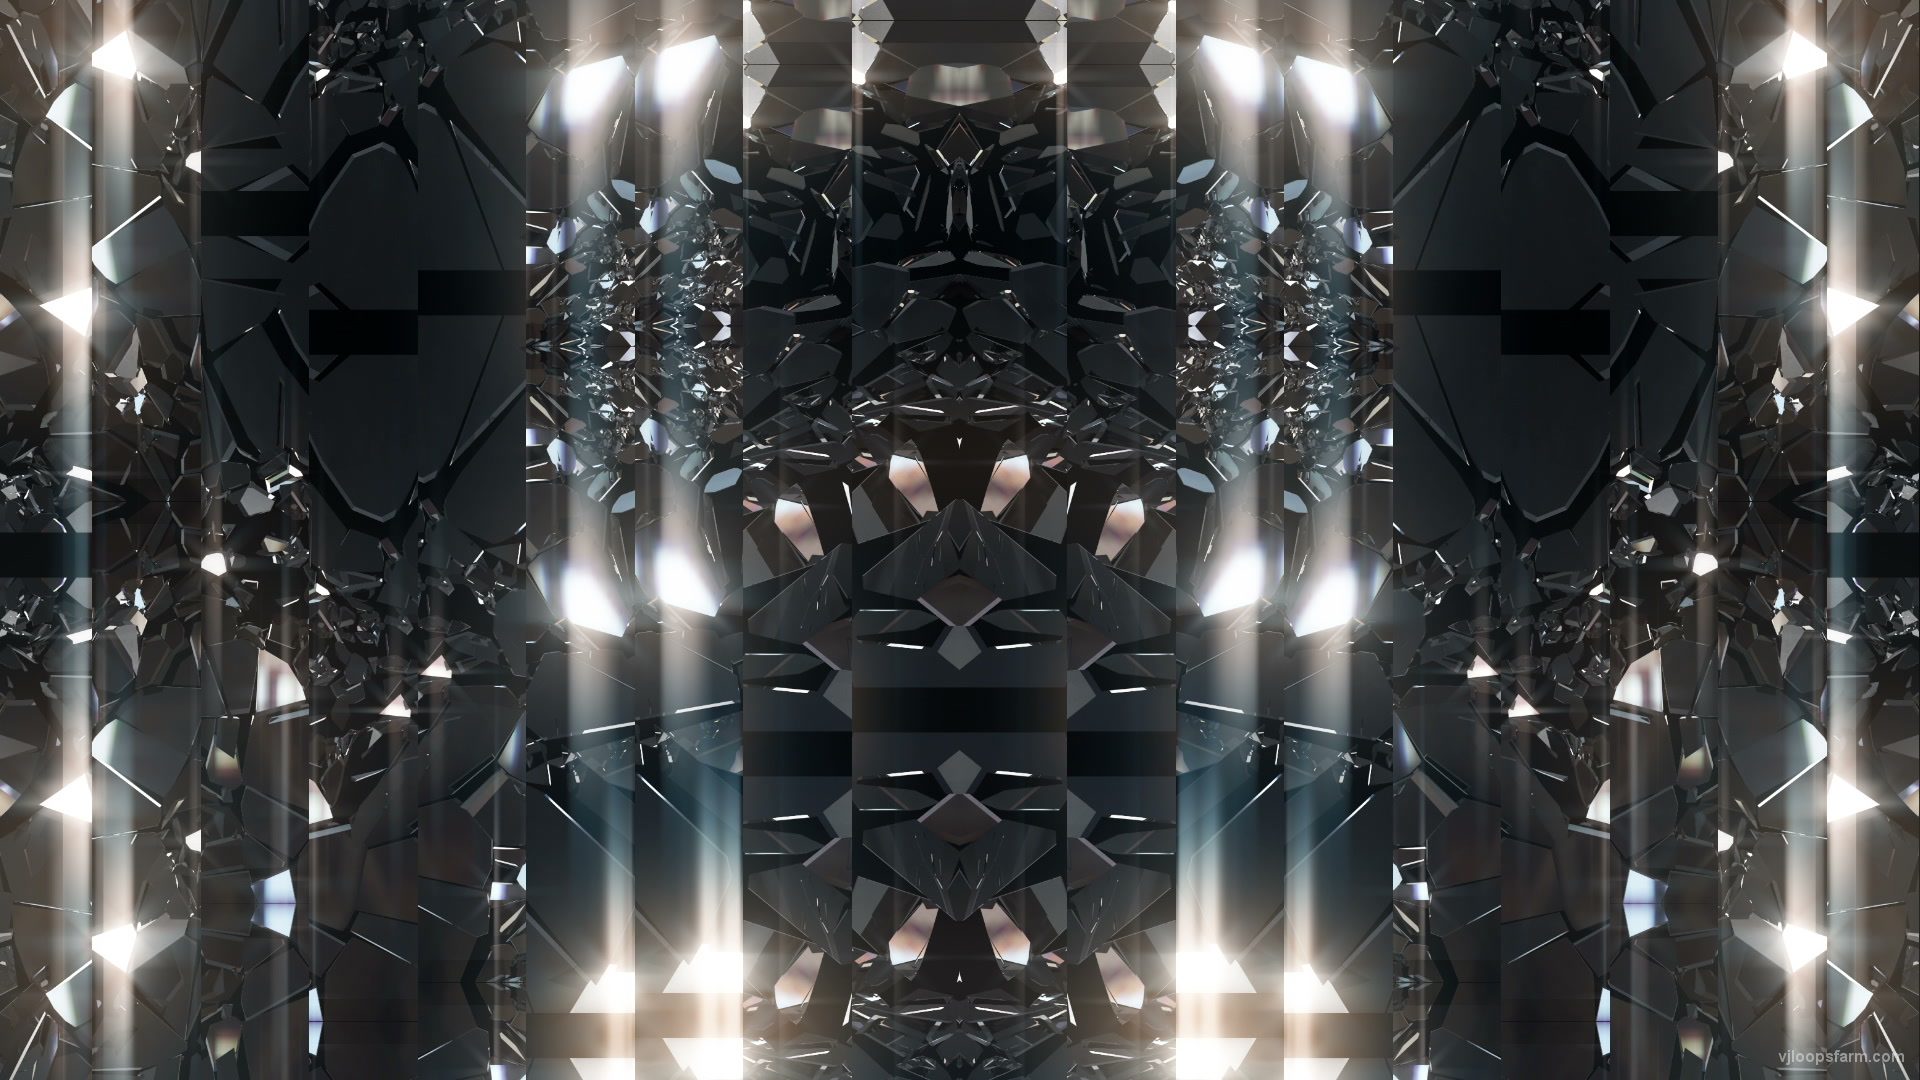 vj video background Strobe-Lighting-Blink-Glass-Video-Art-Vj-Loop_003